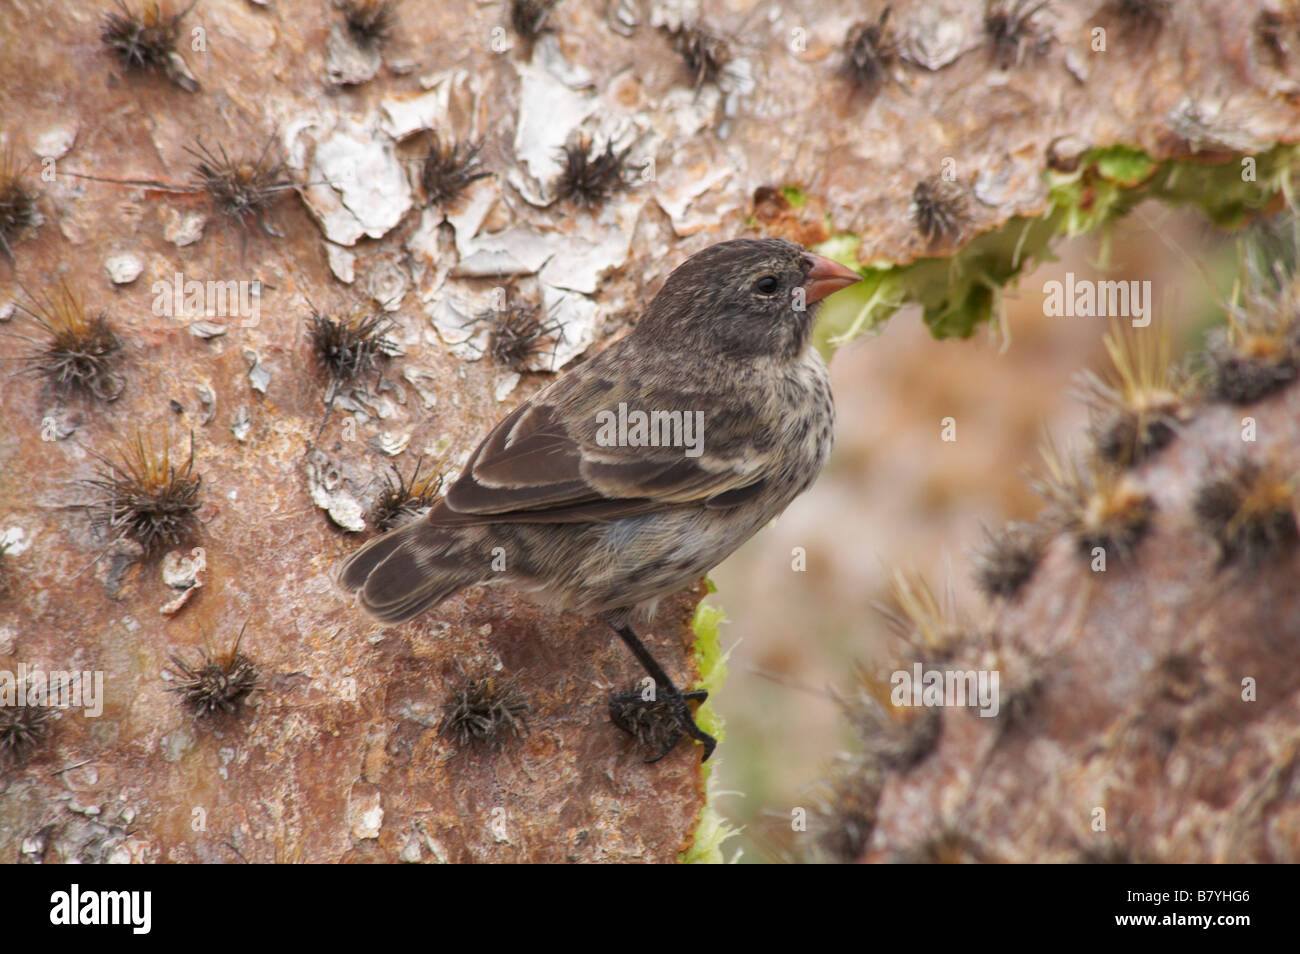 Cactus Ground Finch Geospiza scandens feeding on Giant droopy prickly pear cactus Opuntia spp echios var echios, - Stock Image